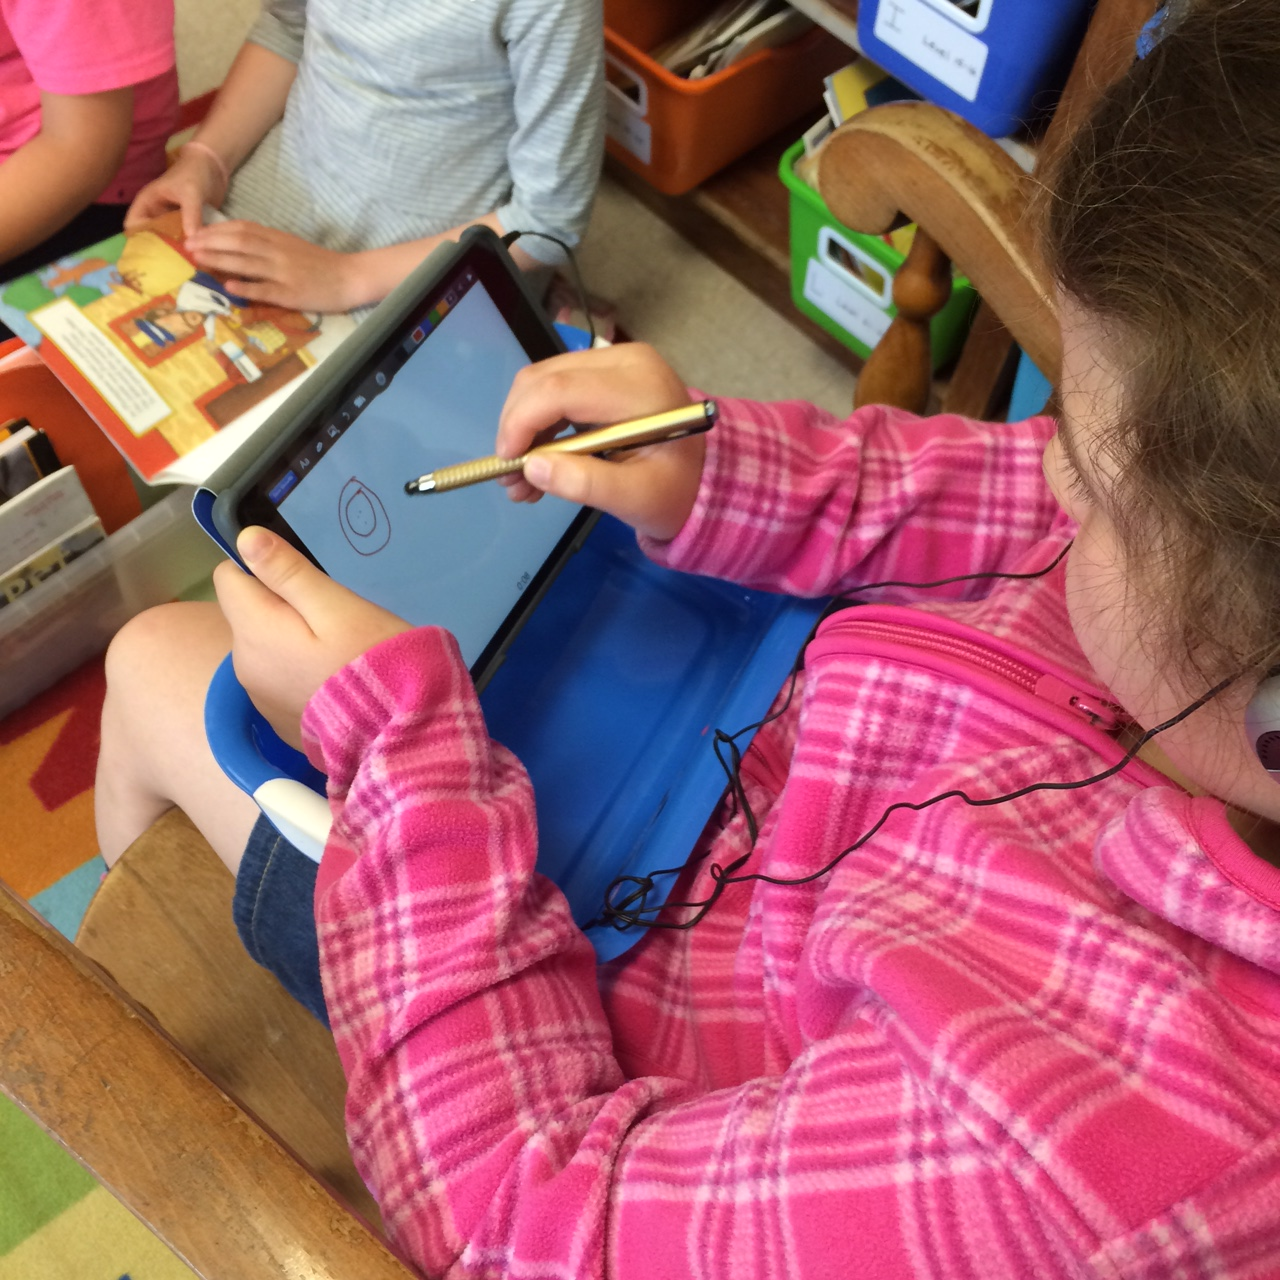 Students using iPads.